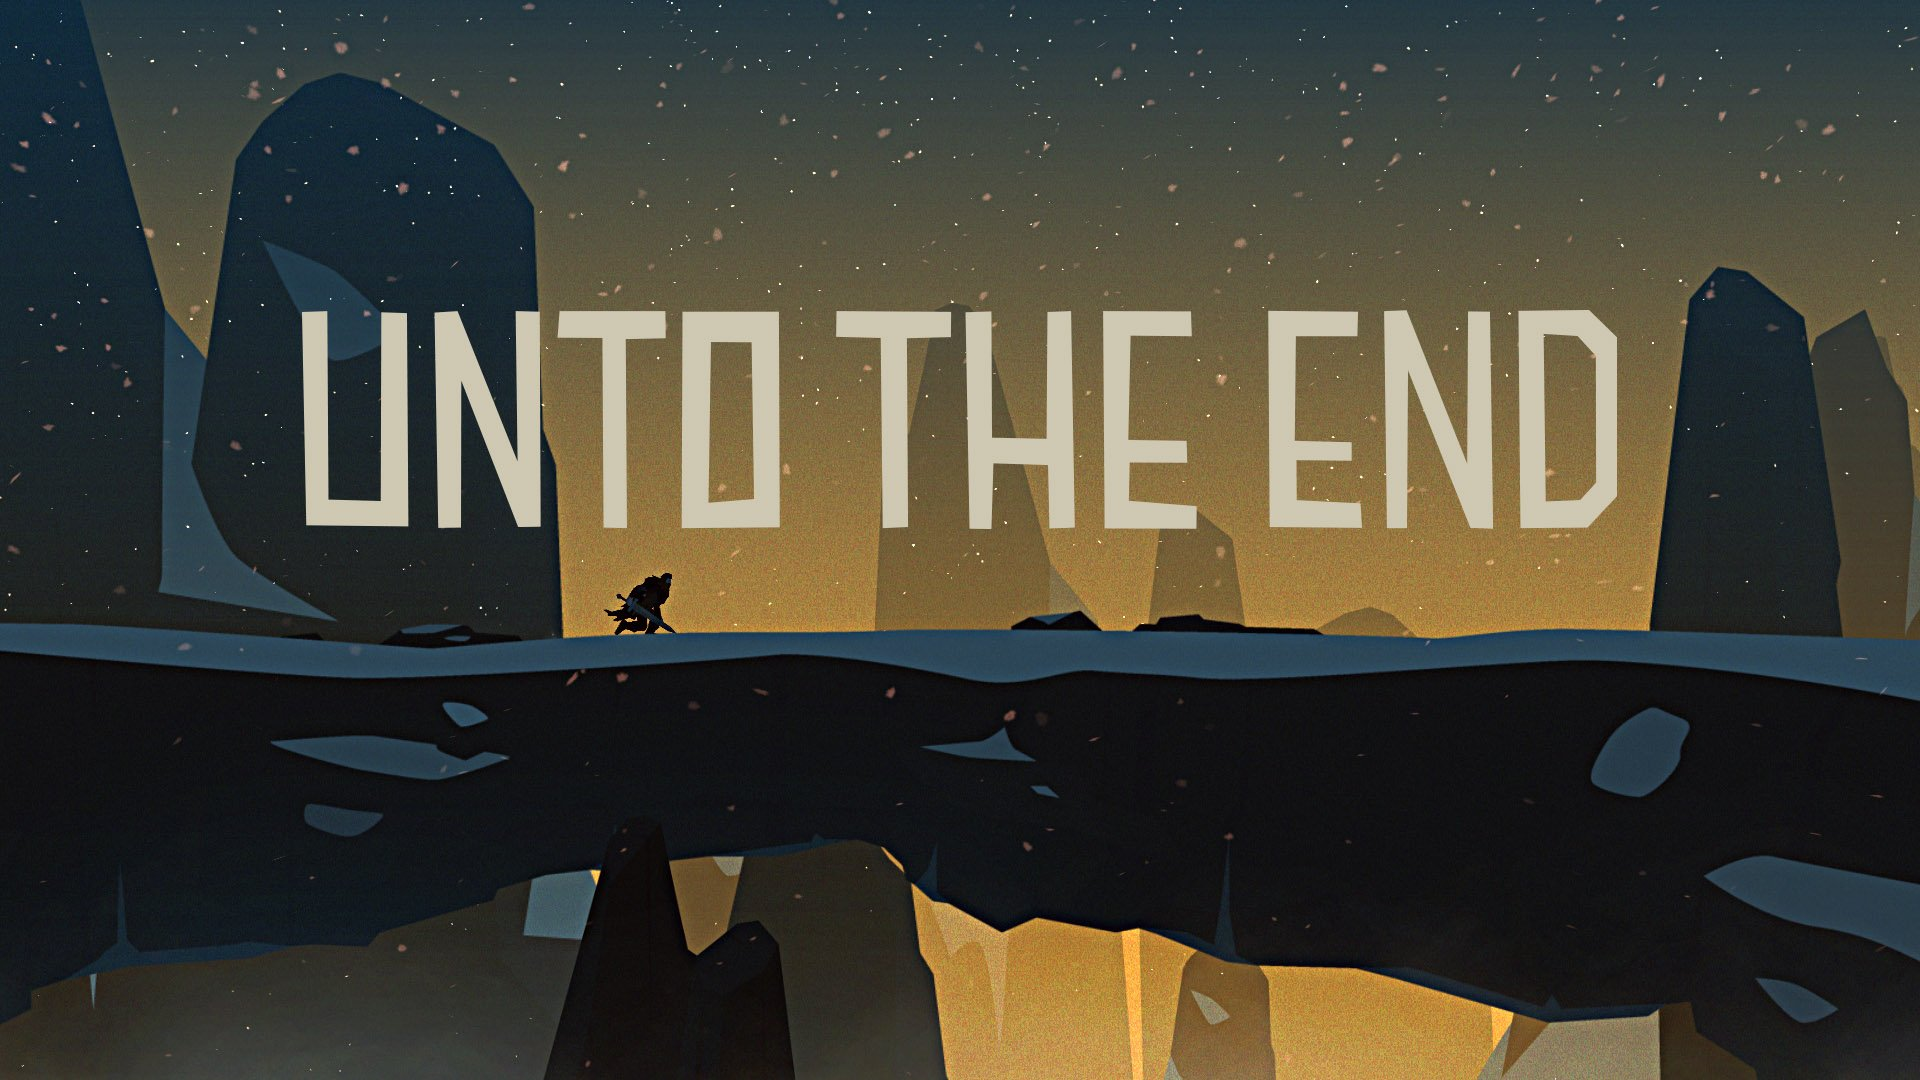 unto the end game hd wallpaper 72582